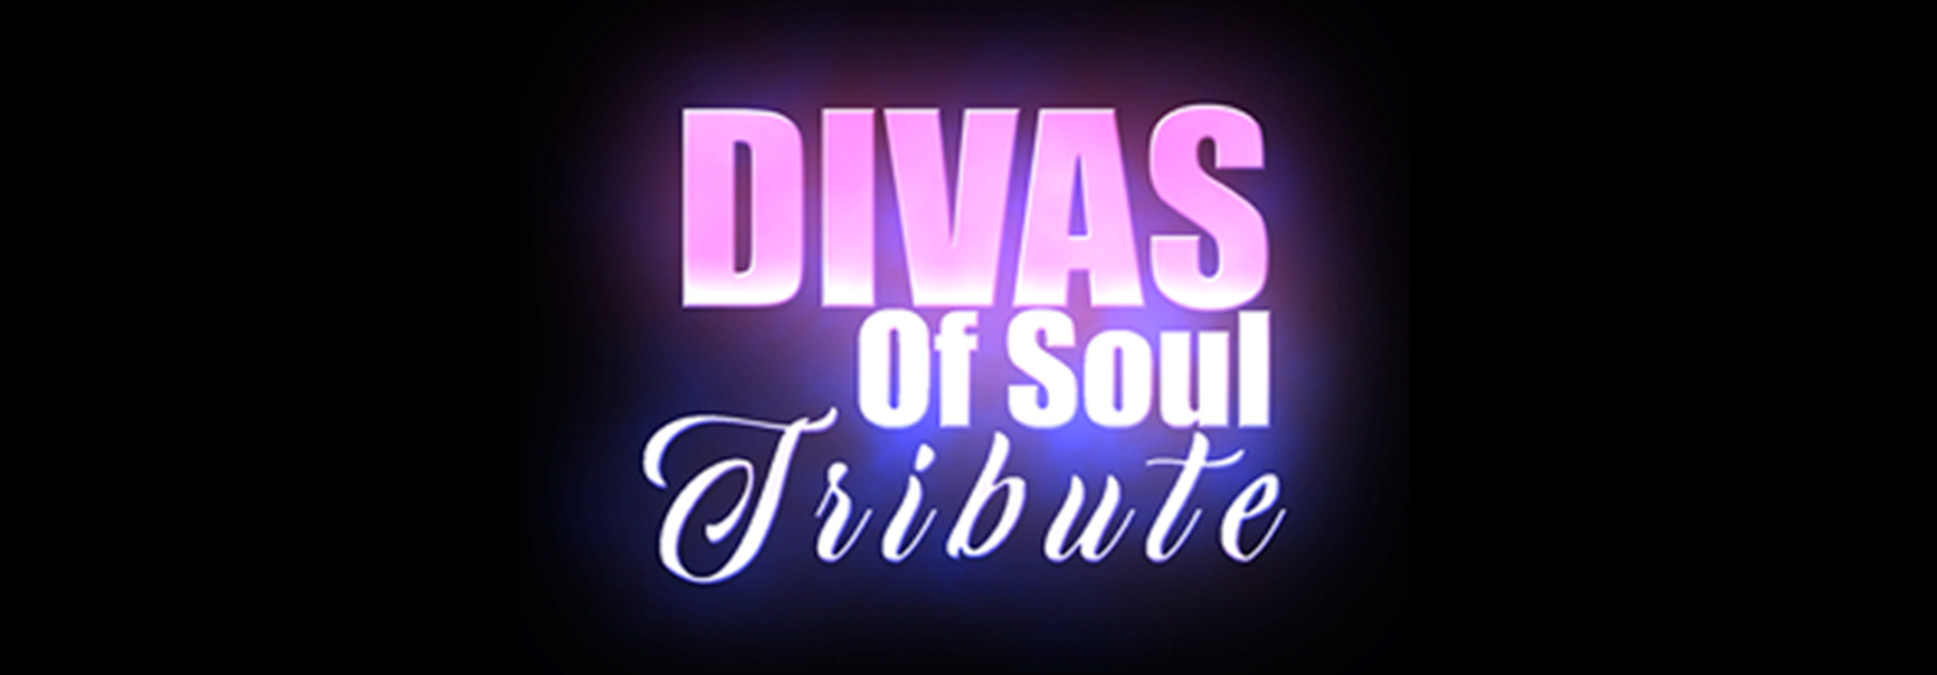 Divas of Soul at the Marcus Center Milwaukee